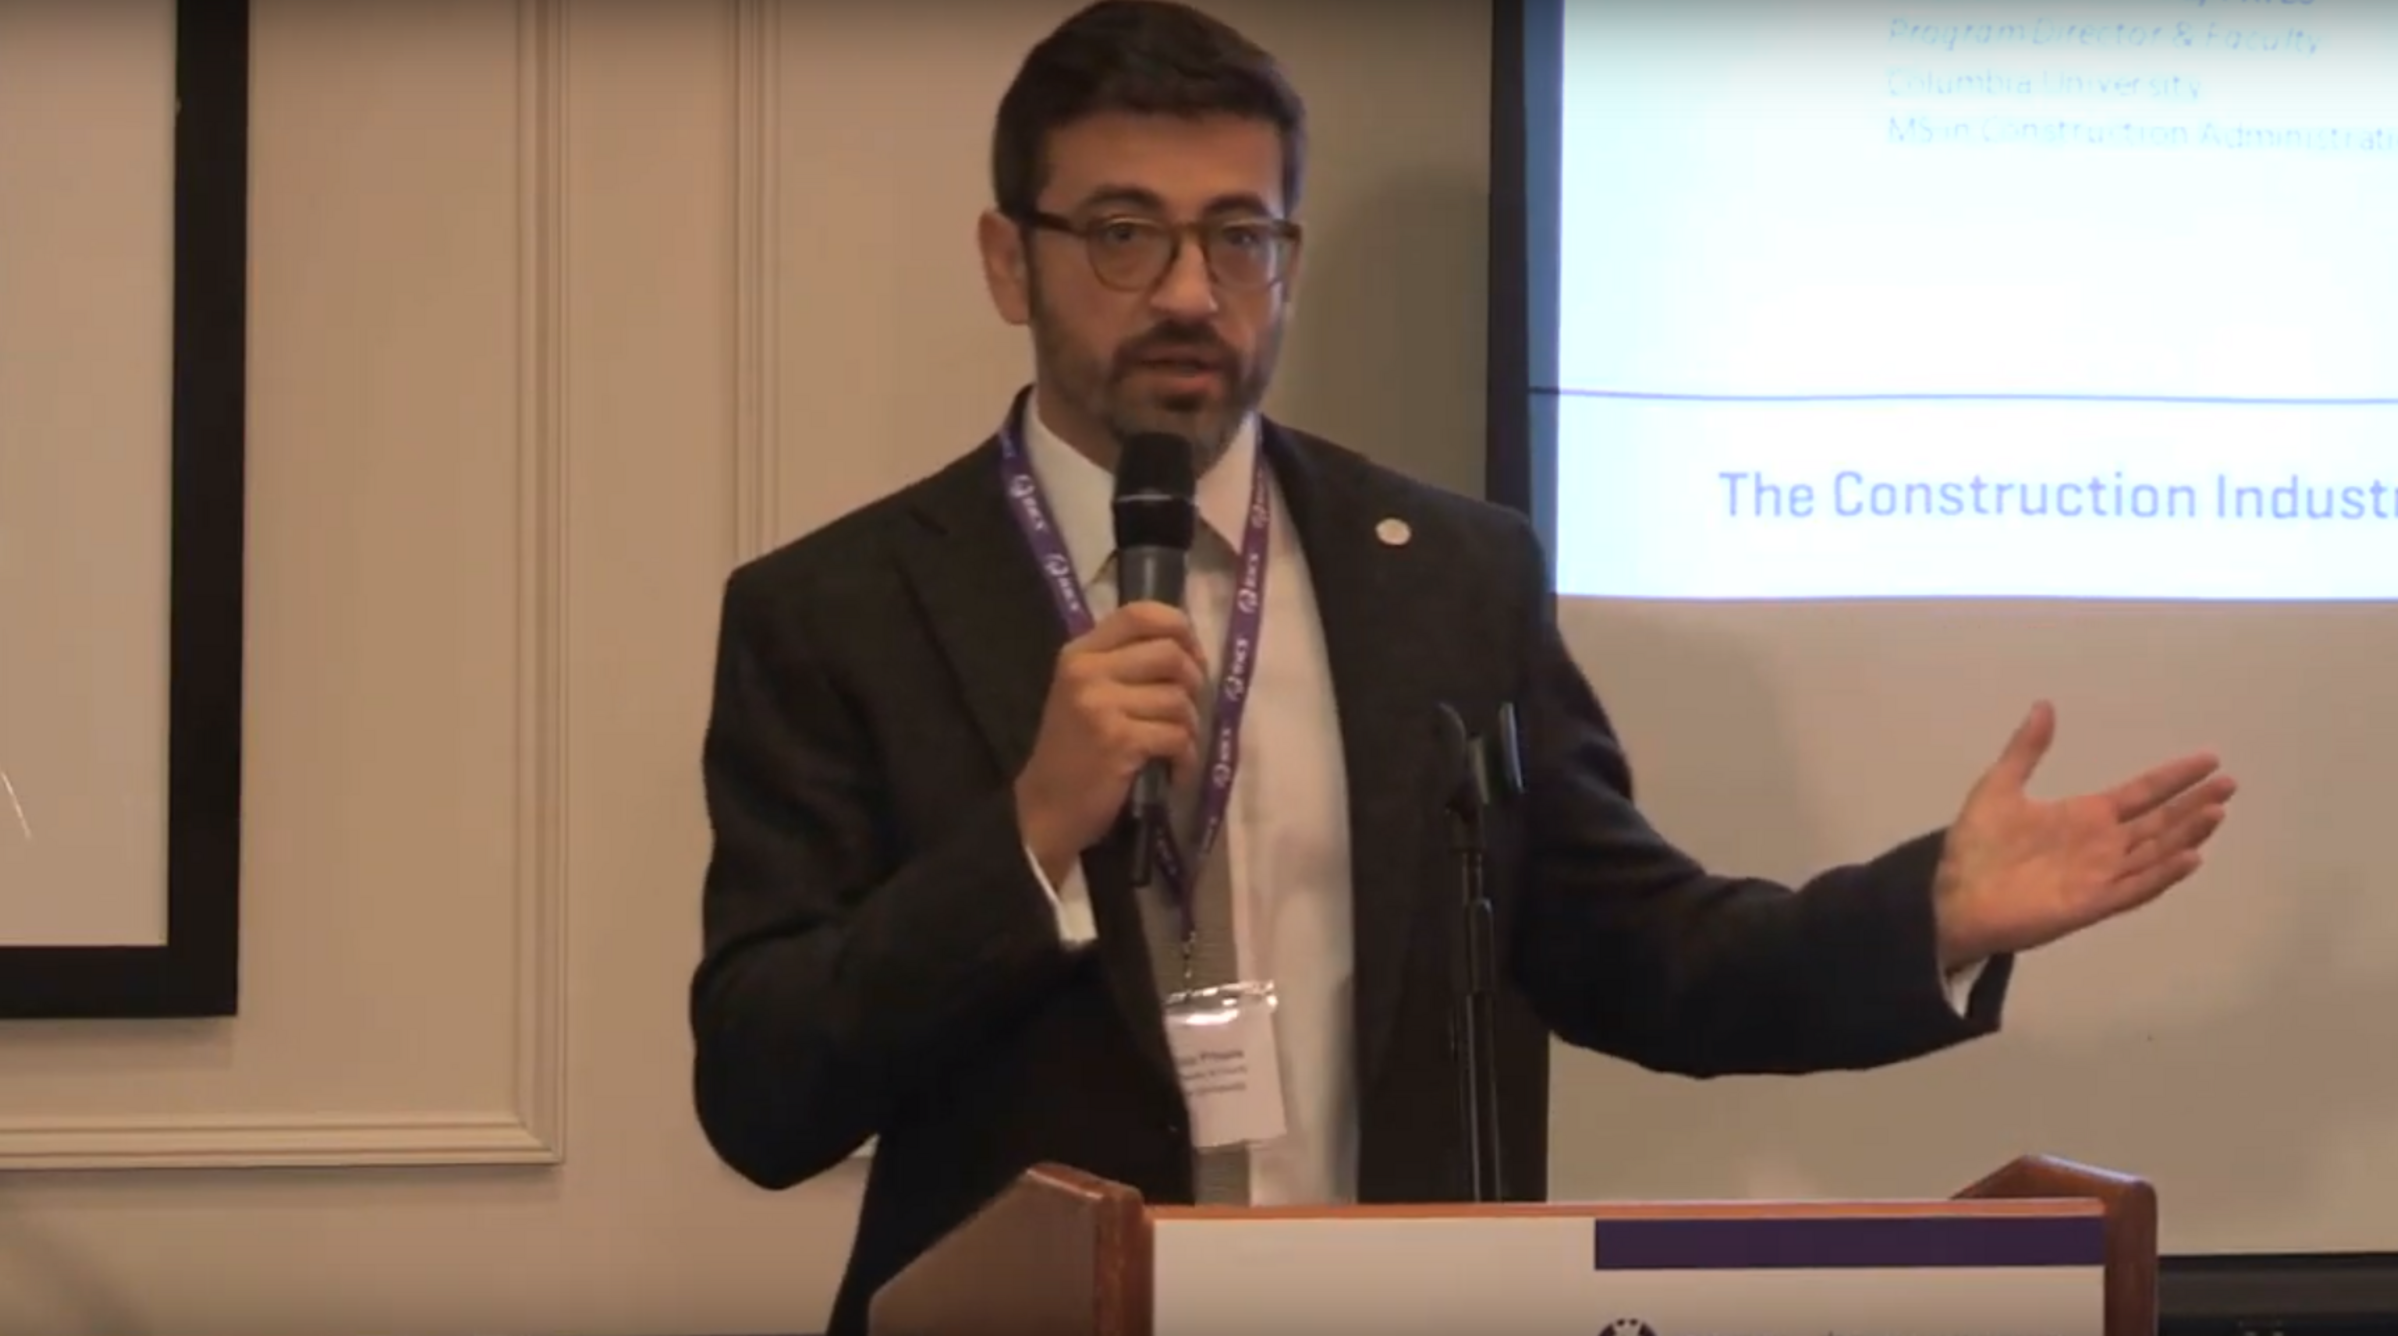 Watch video highlights from the 2019 Columbia and RICS Construction Technology Symposium.